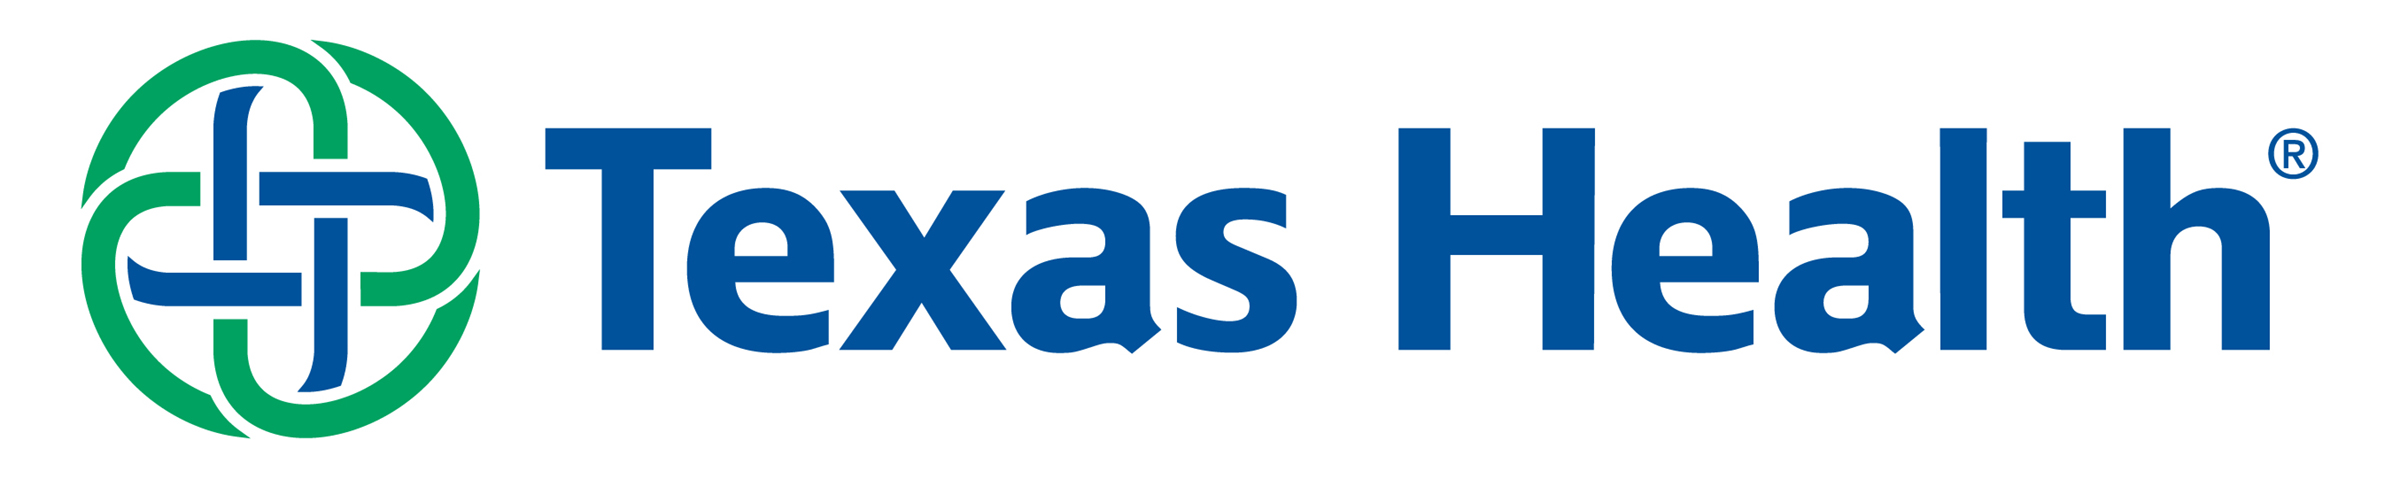 17-THRS-0450_Texas-Health_Logo_Color.jpg